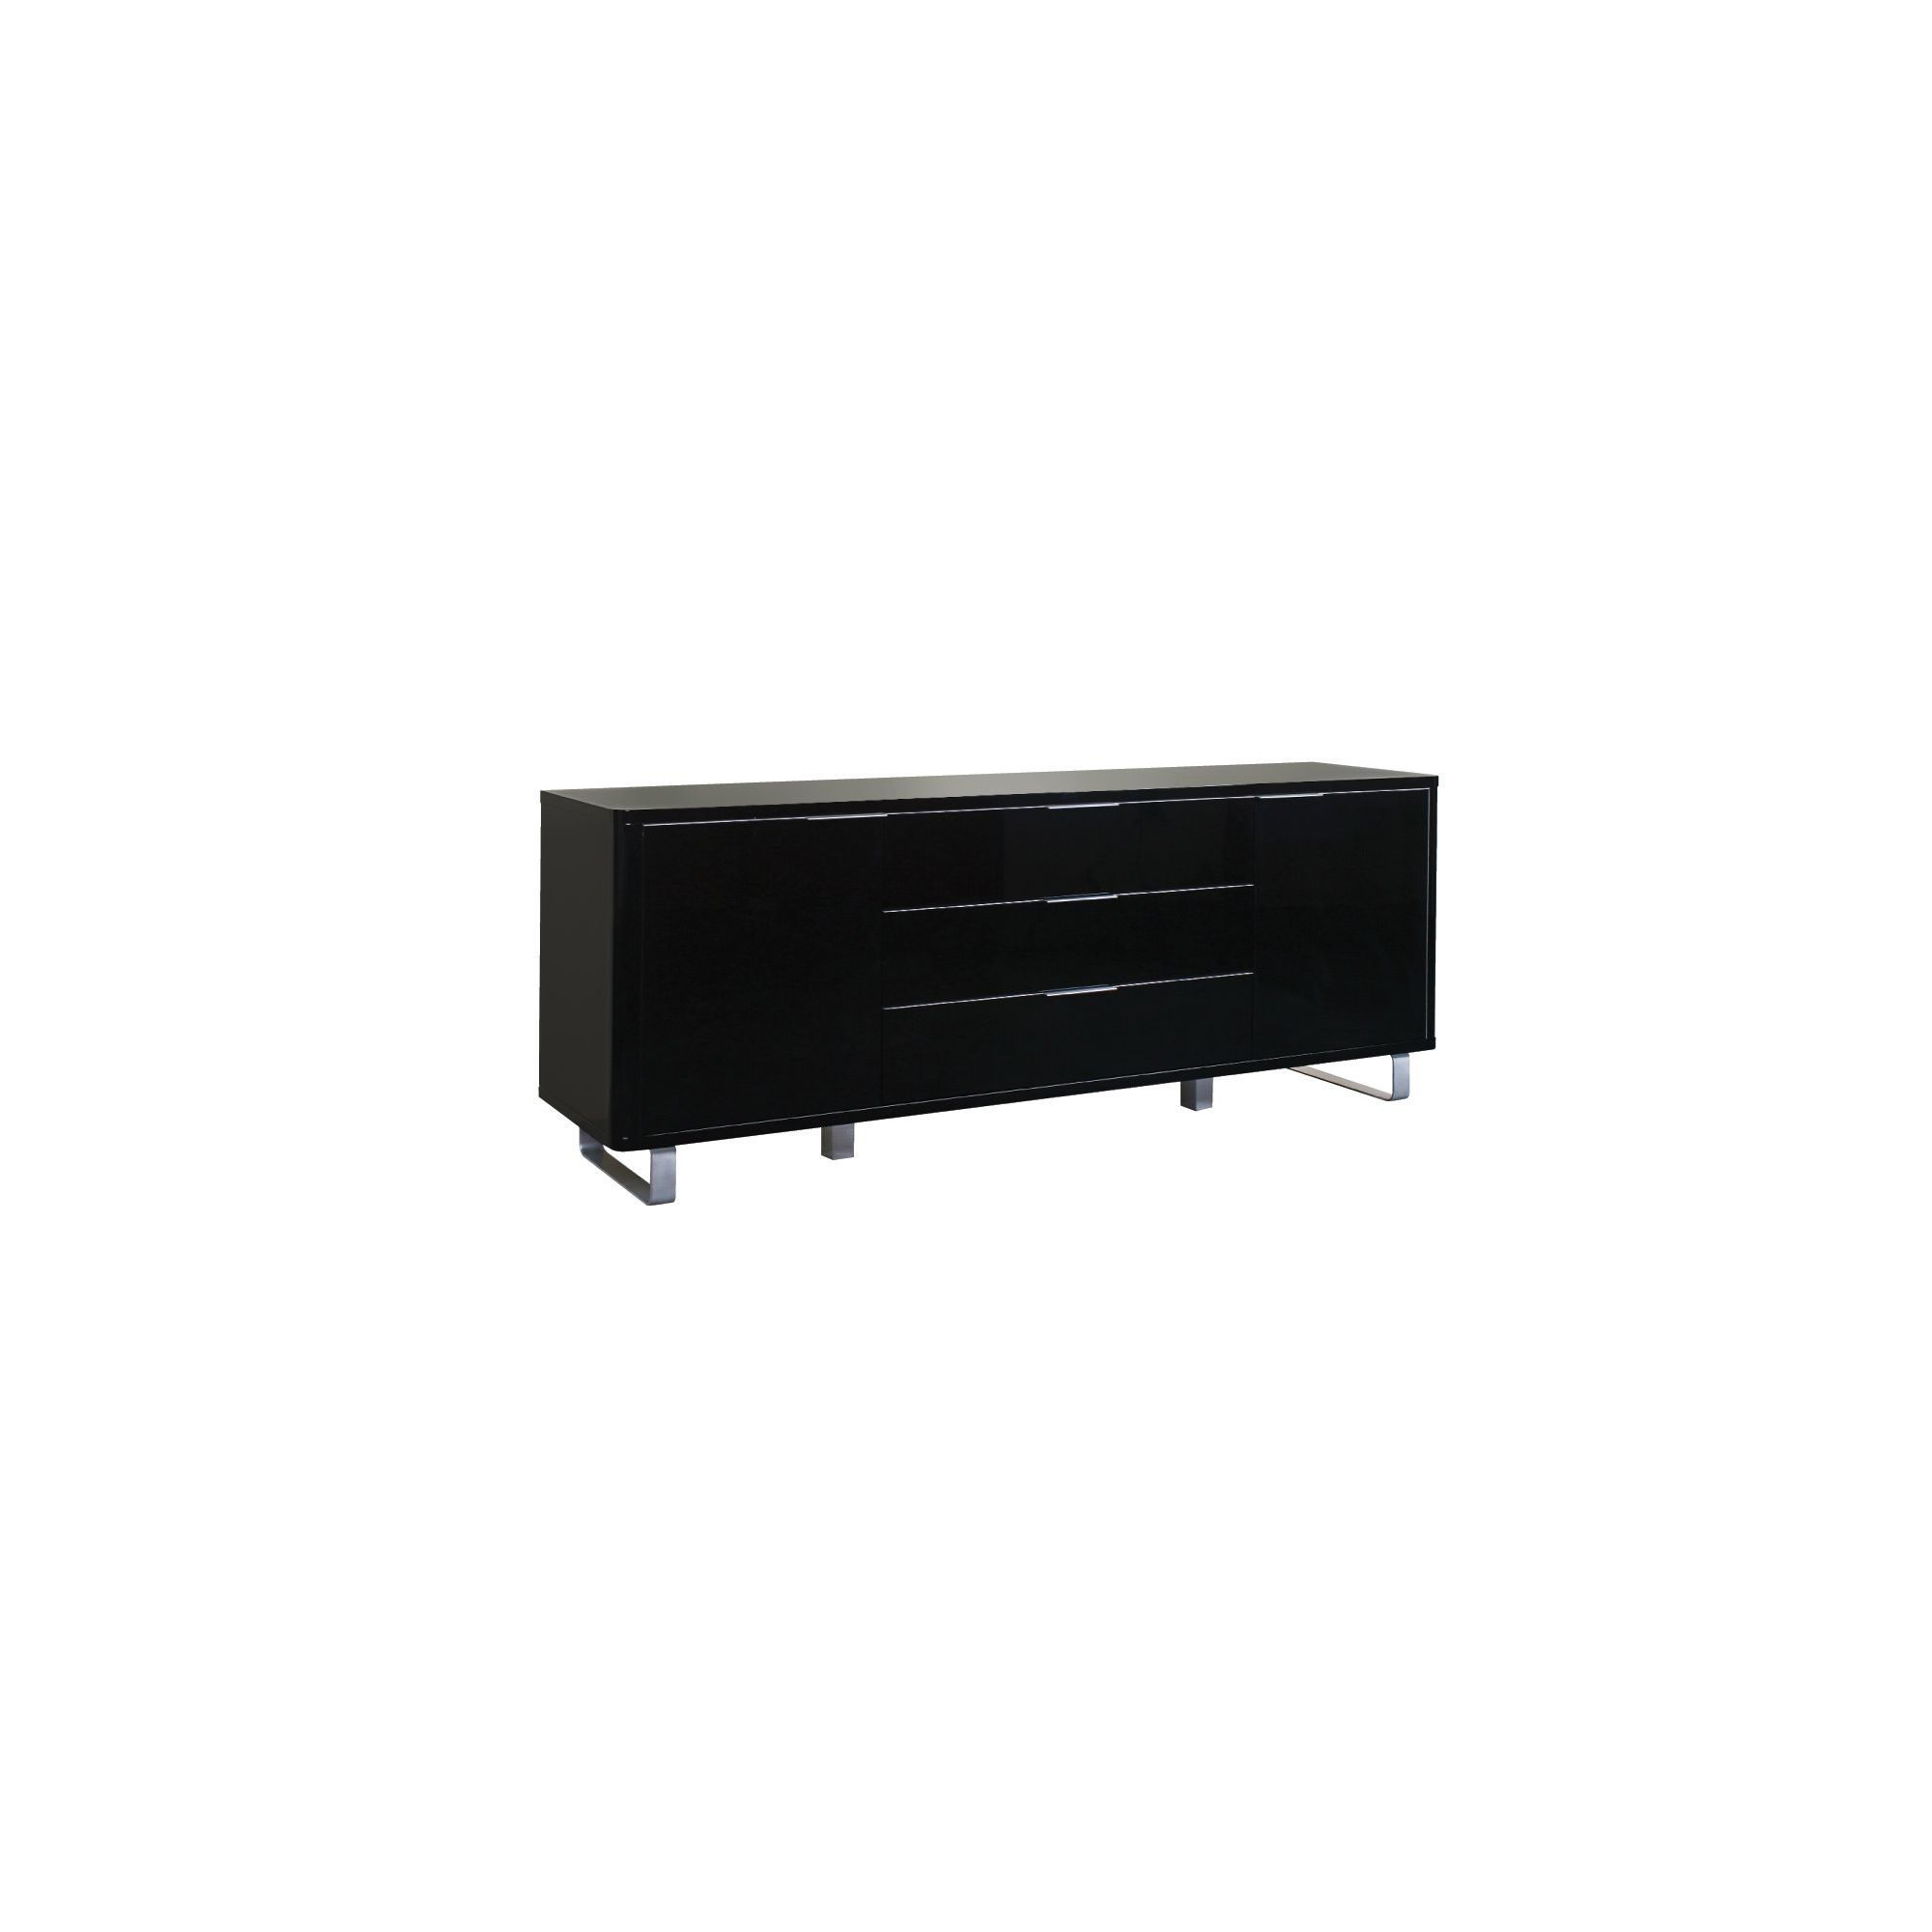 Home Zone Accent Sideboard - Black at Tescos Direct